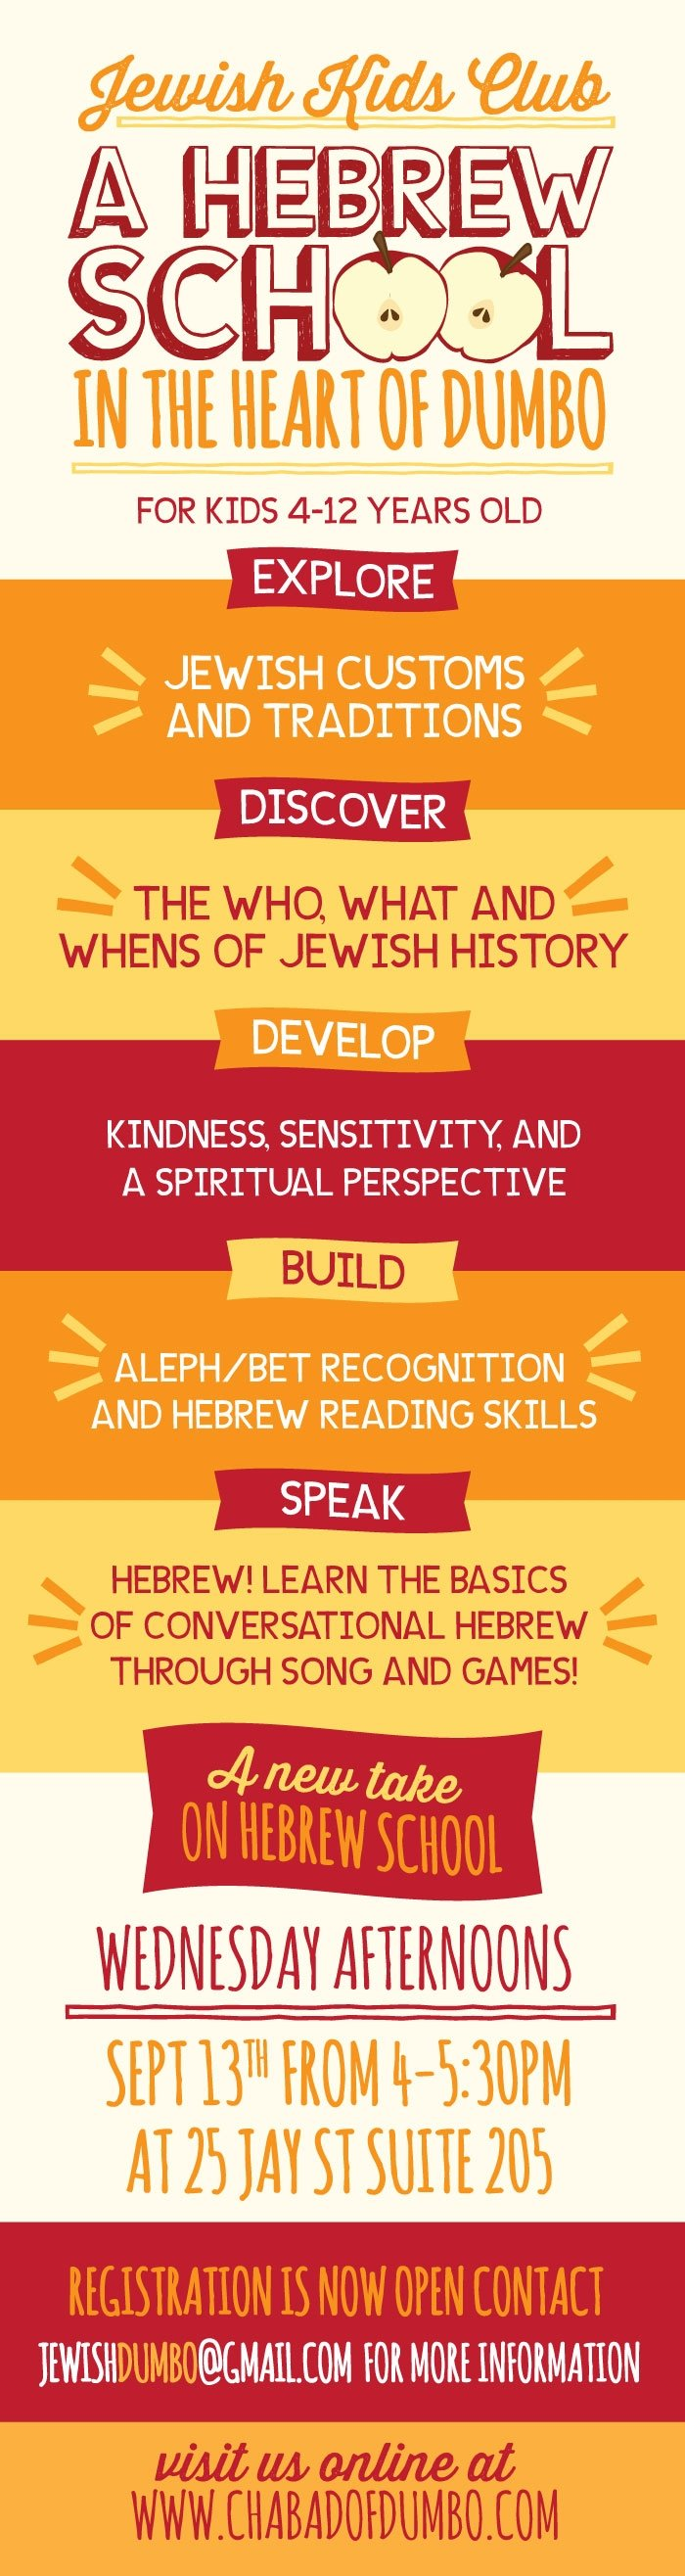 COD-hebrew-school-email (1).jpg